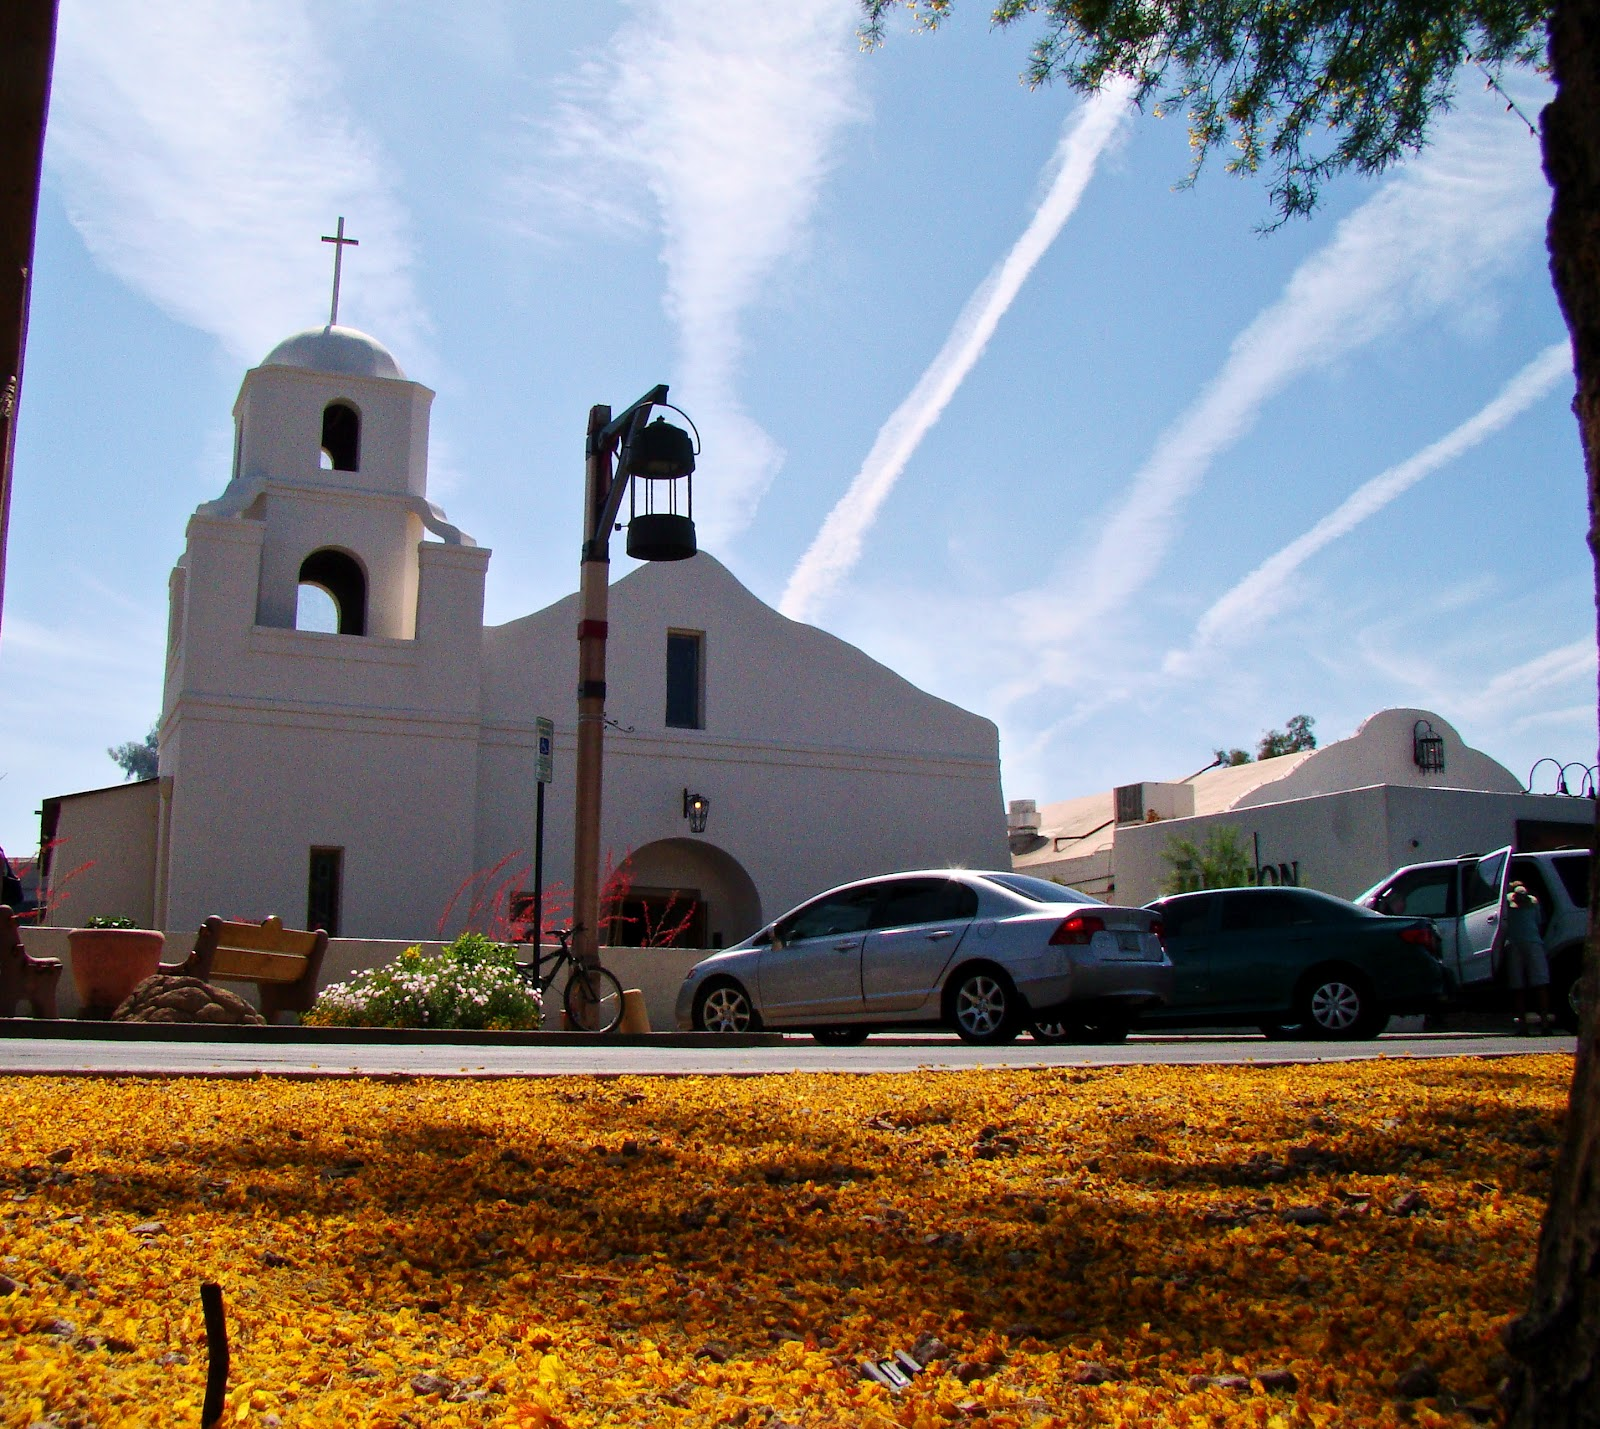 Mission Scottsdale 1889: Scottsdale Daily Photo: Photo: Scottsdale Mission And A